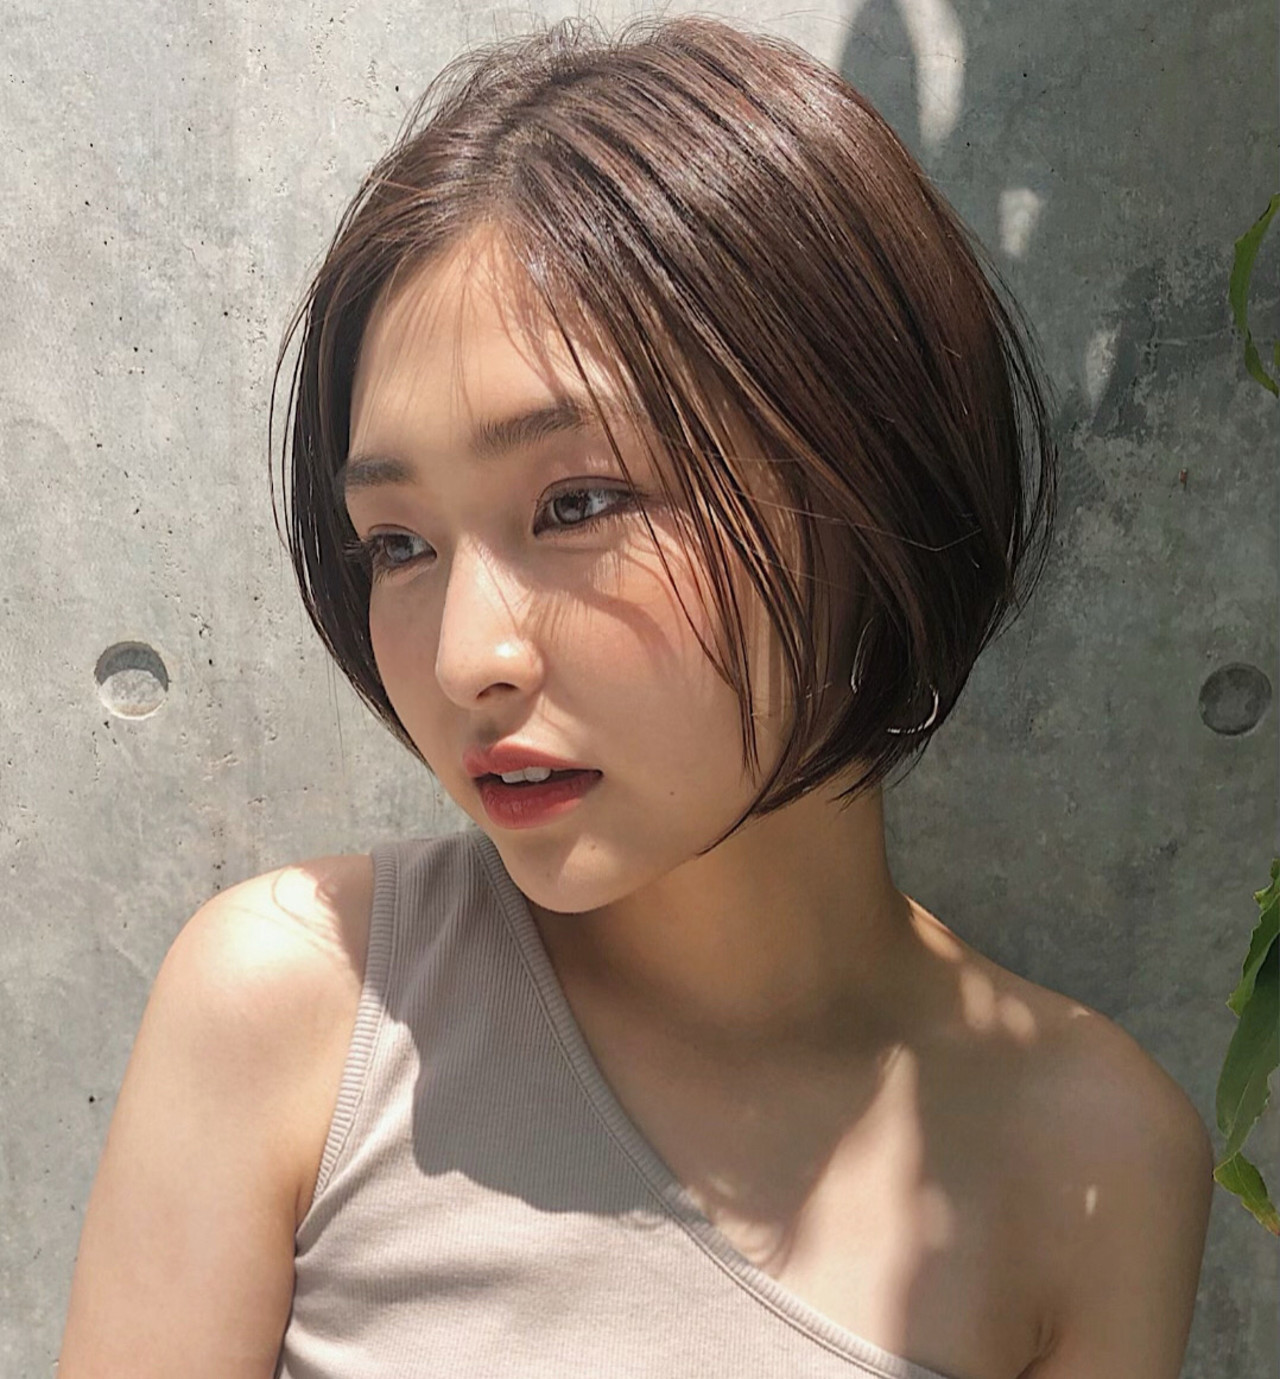 なりたいタイプ別♡ショートヘアの今っぽ最強フォルム教えます!